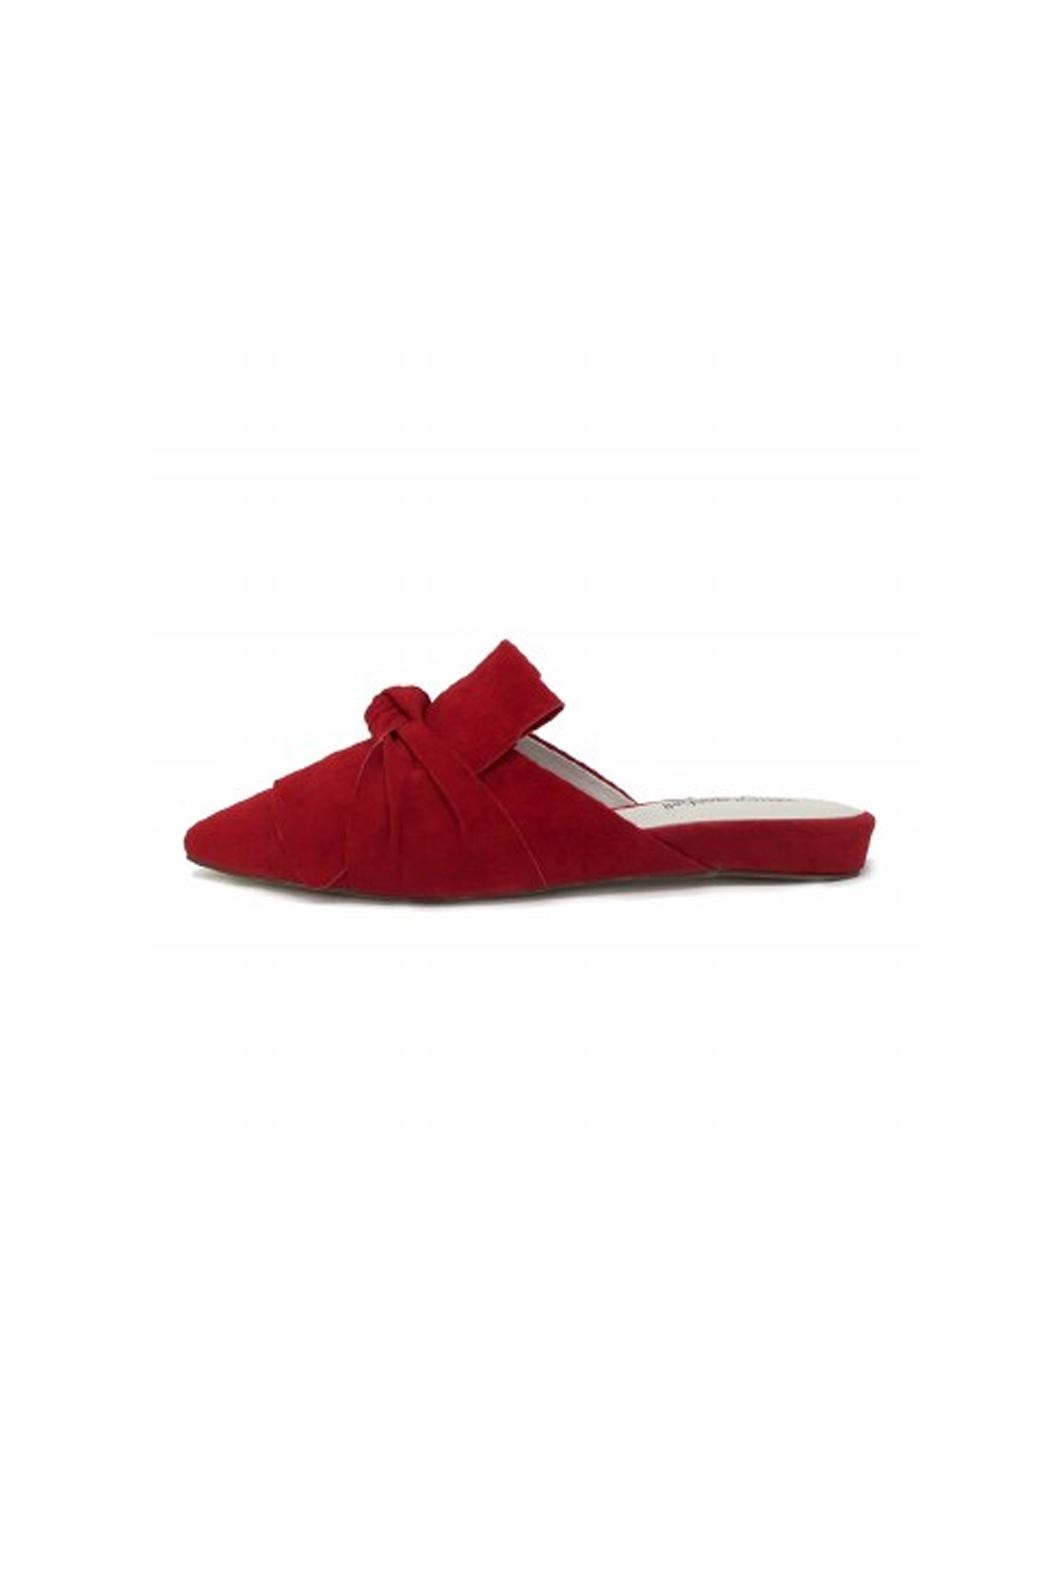 Jeffrey Campbell Red Suede Flats - Main Image